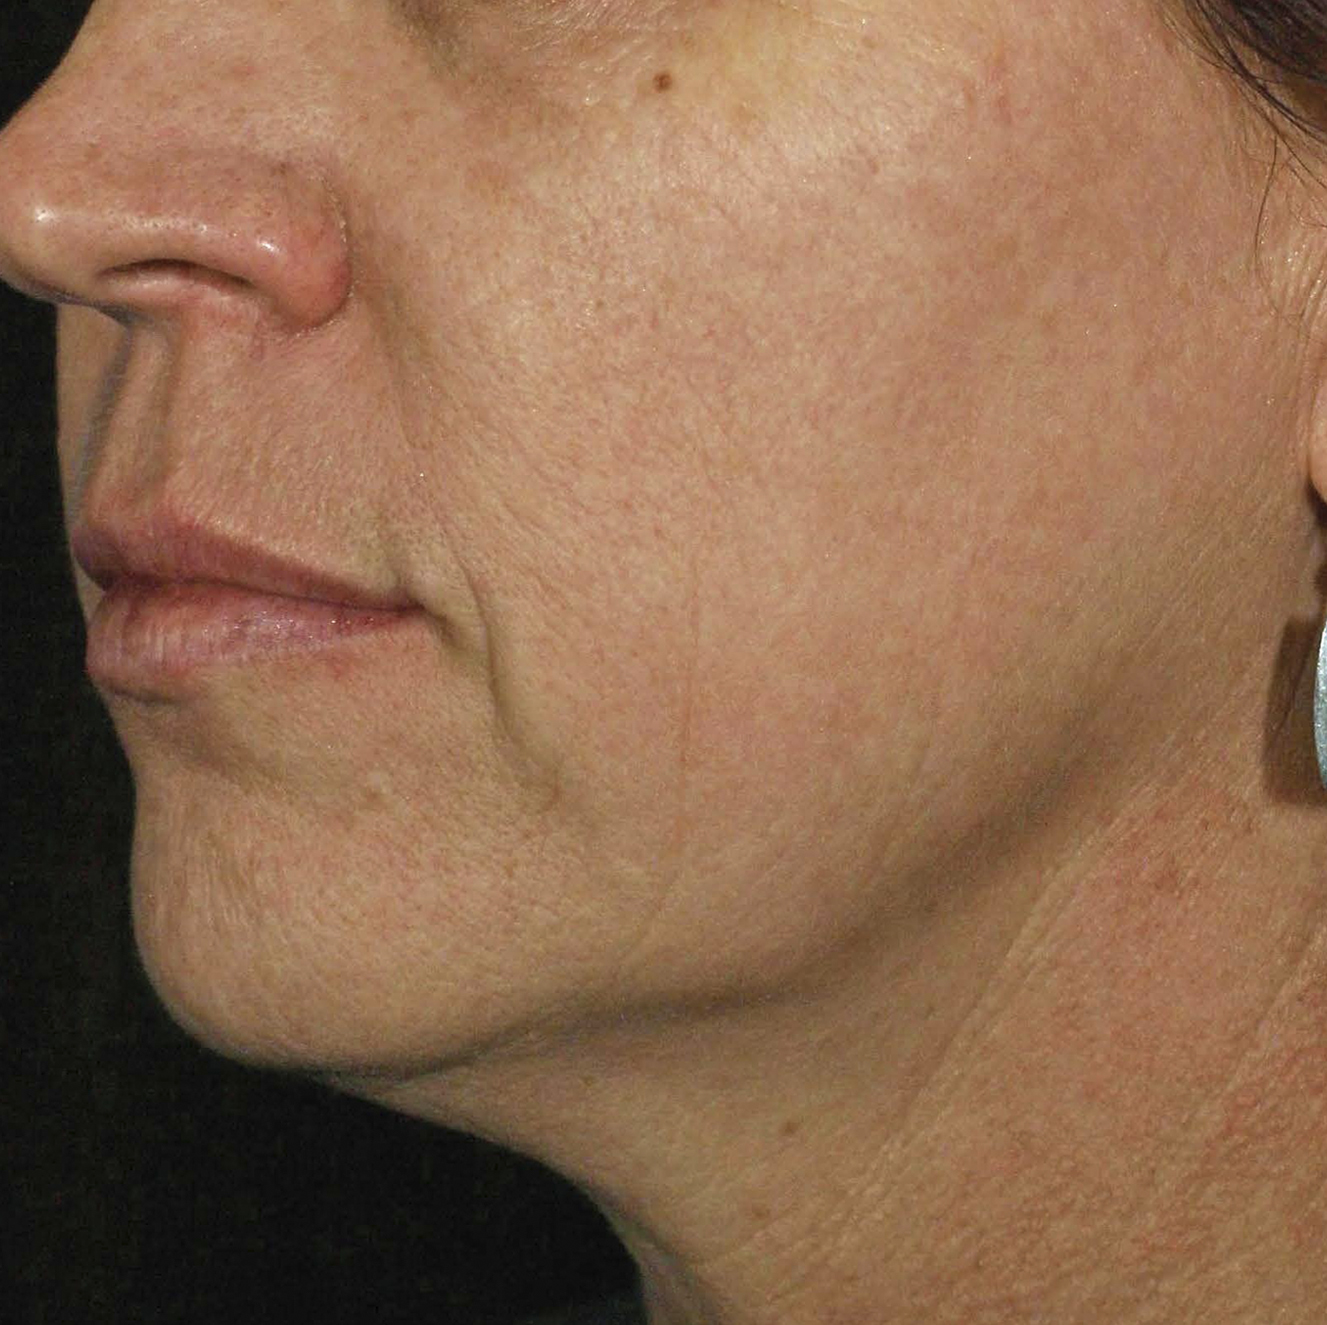 Skintyte After Treatment Image